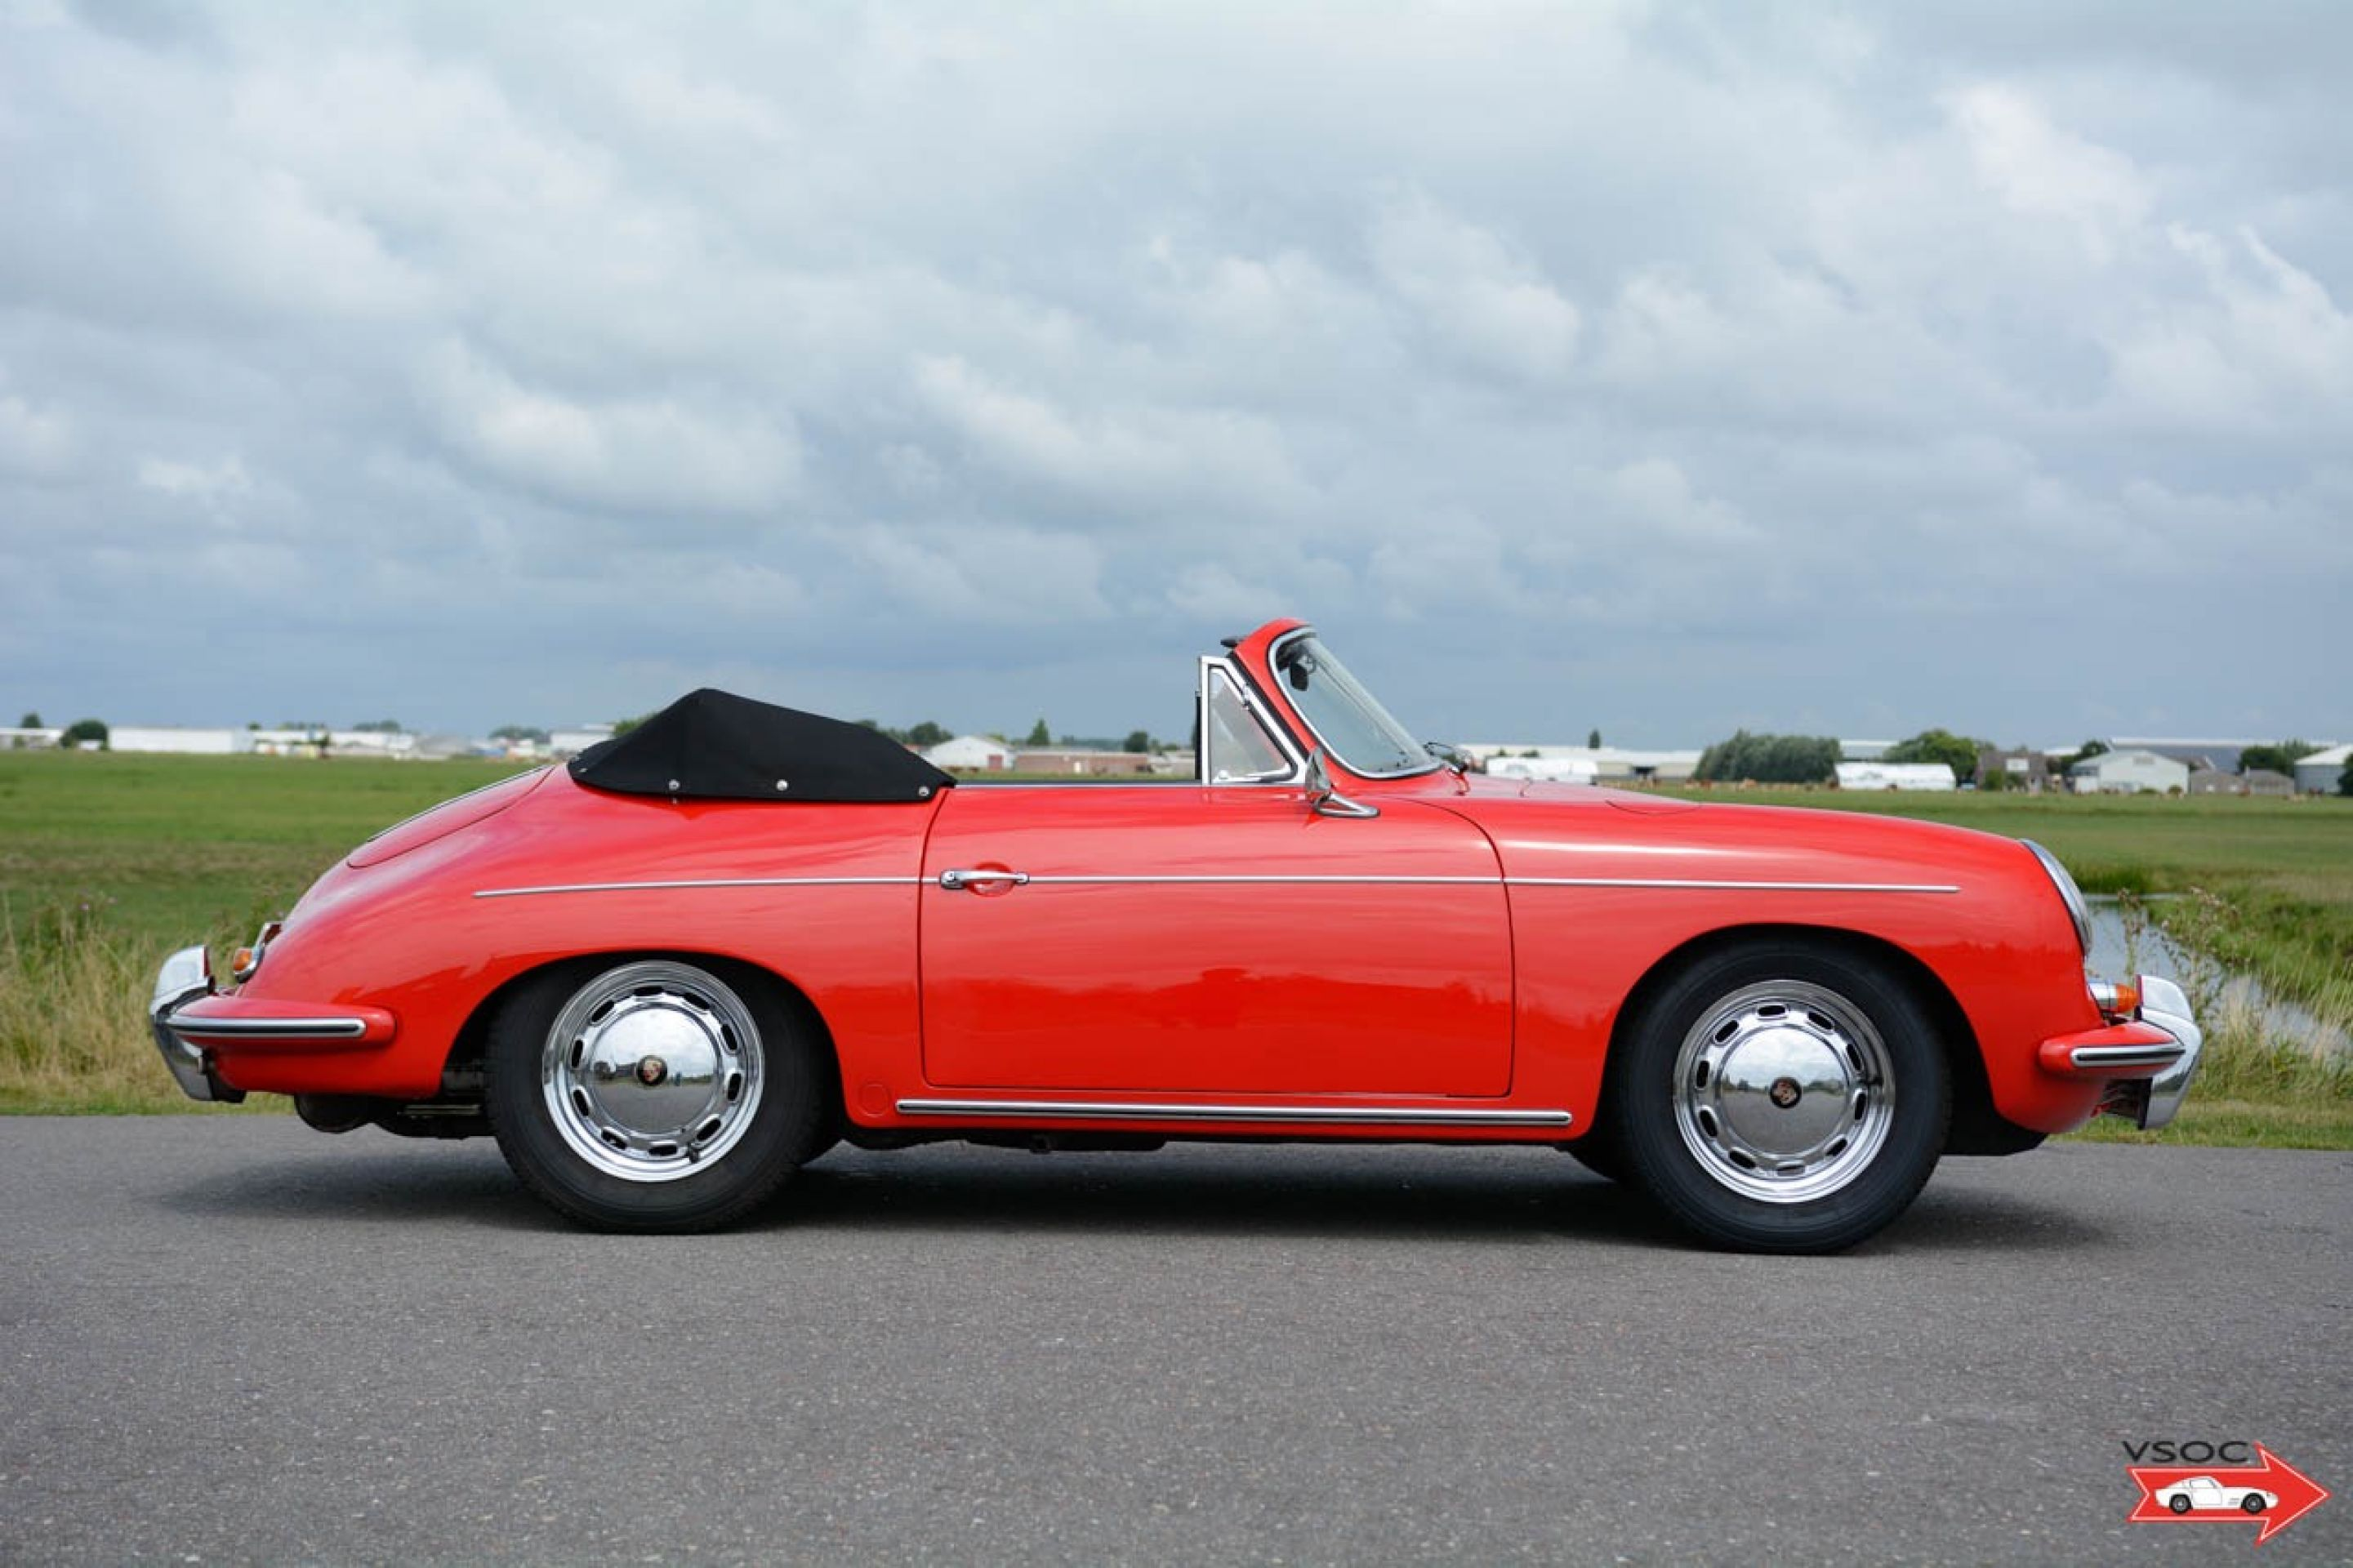 Porsche 356 B T6 1600 S cabriolet 1962 - runs and drives well